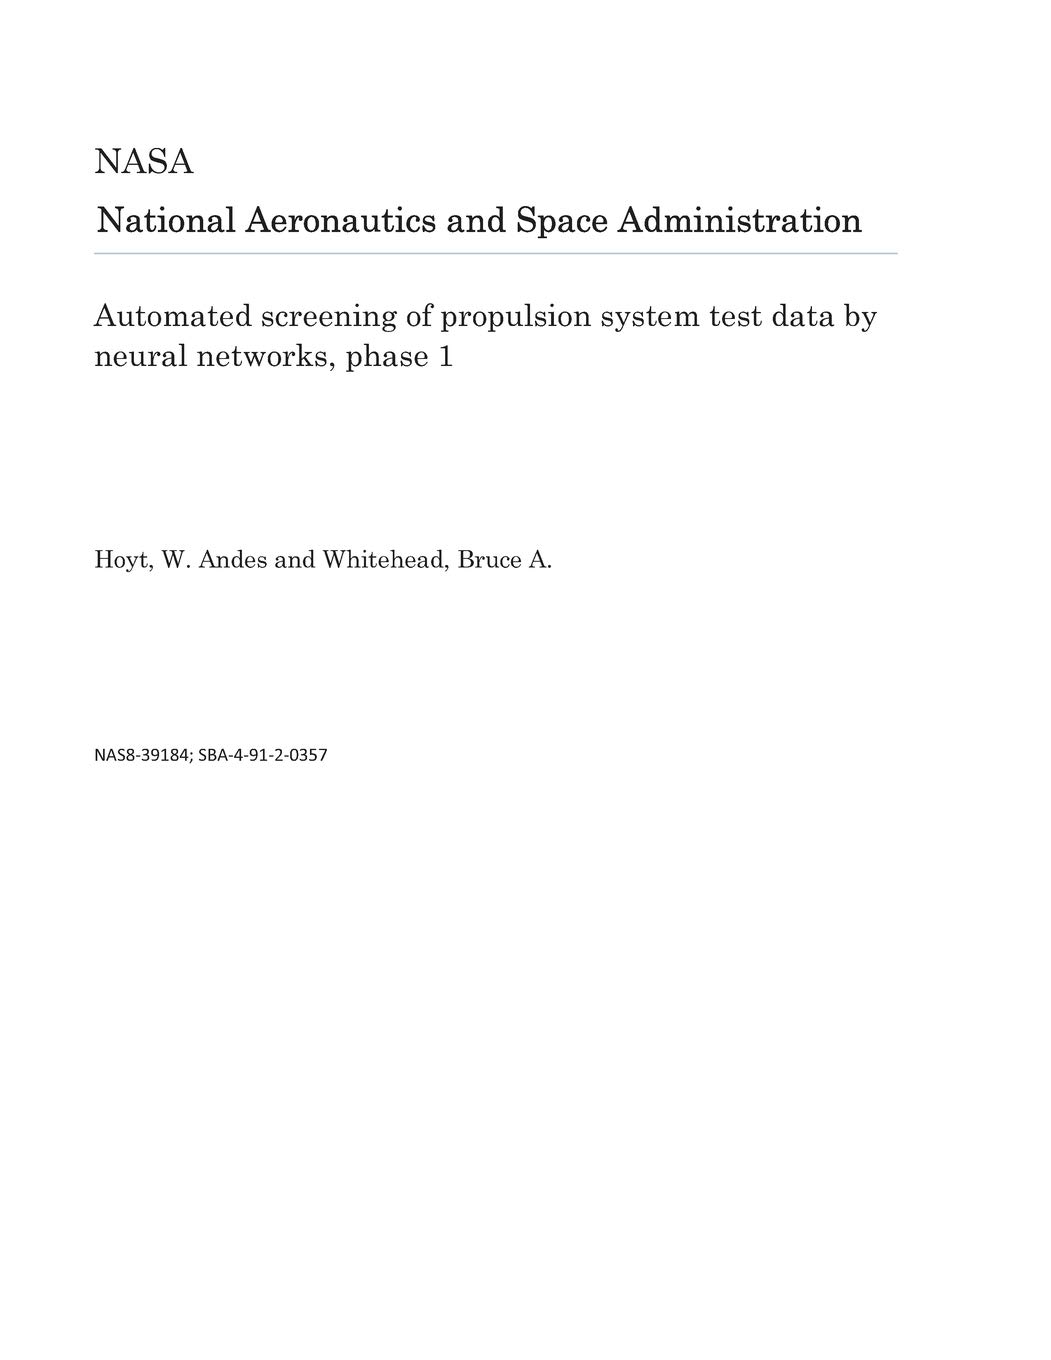 Automated screening of propulsion system test data by neural networks, phase 1: Amazon.es: National Aeronautics and Space Administration NASA: Libros en ...